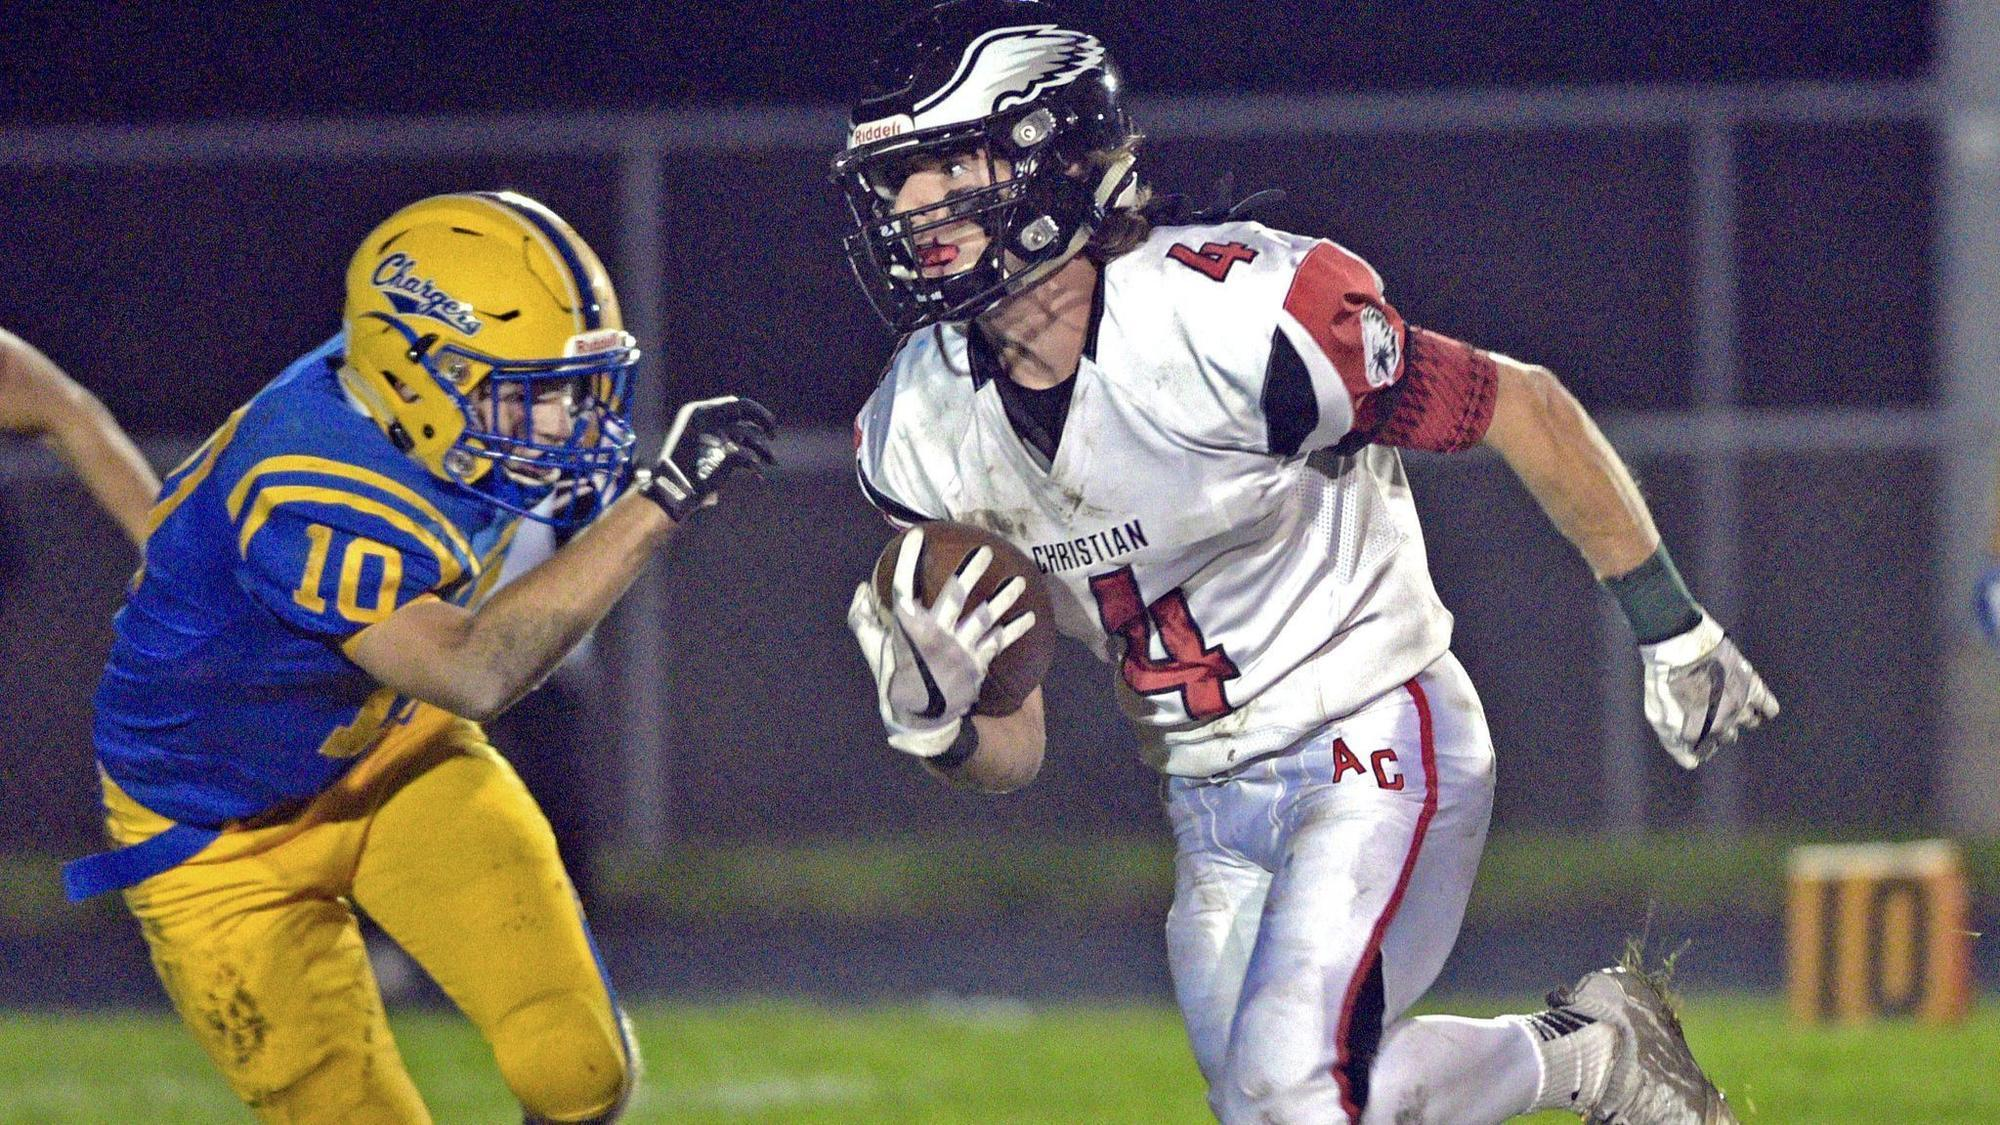 Football notes: Trey Madsen puts up big numbers that add up for playoff-bound Au...